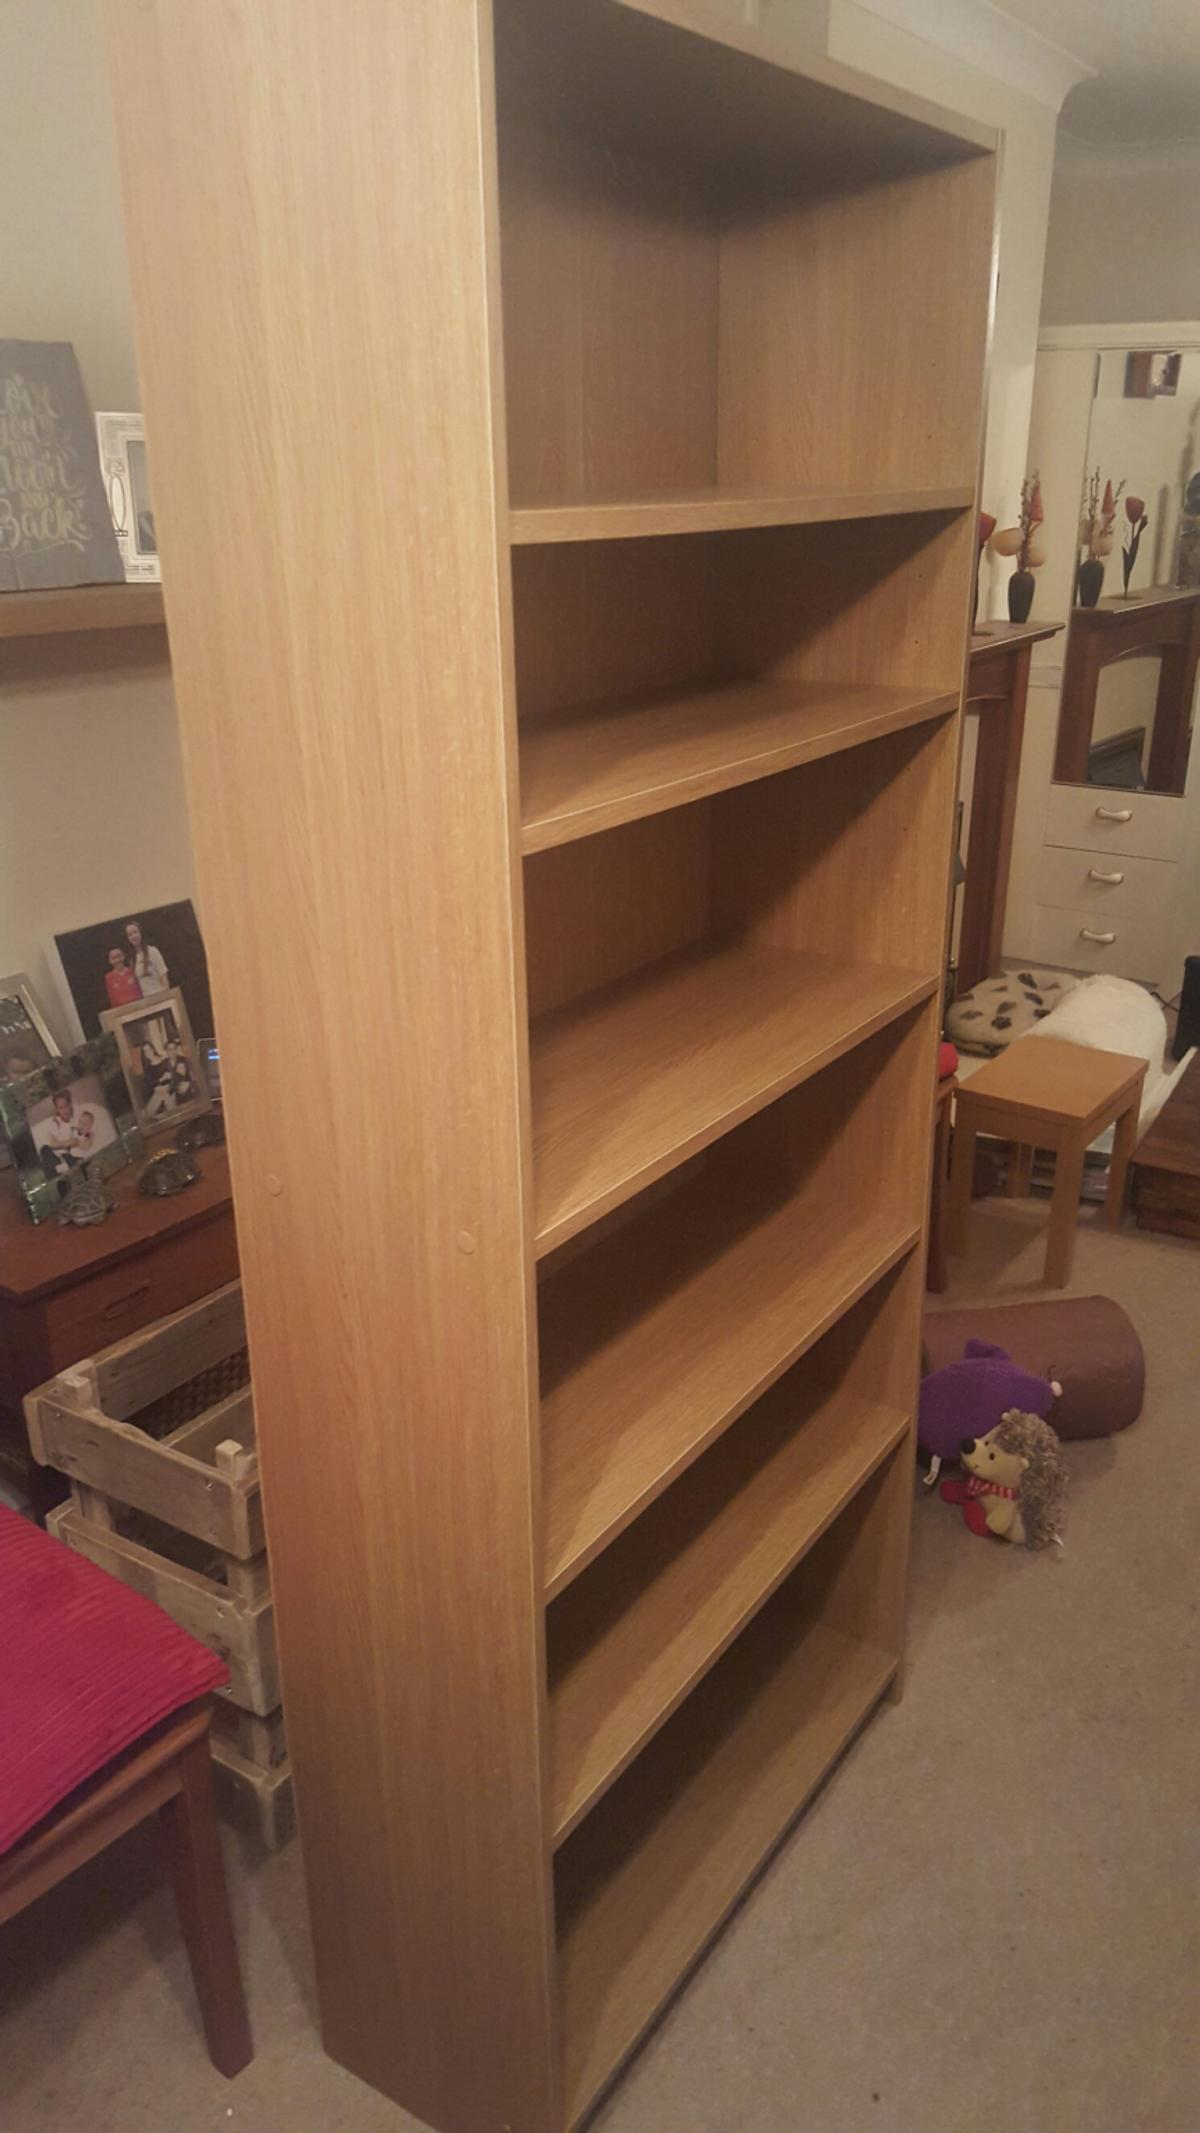 Argos bookcase. Excellent condition. Shelves are movable. 180x78x29.5cm. Collection only.